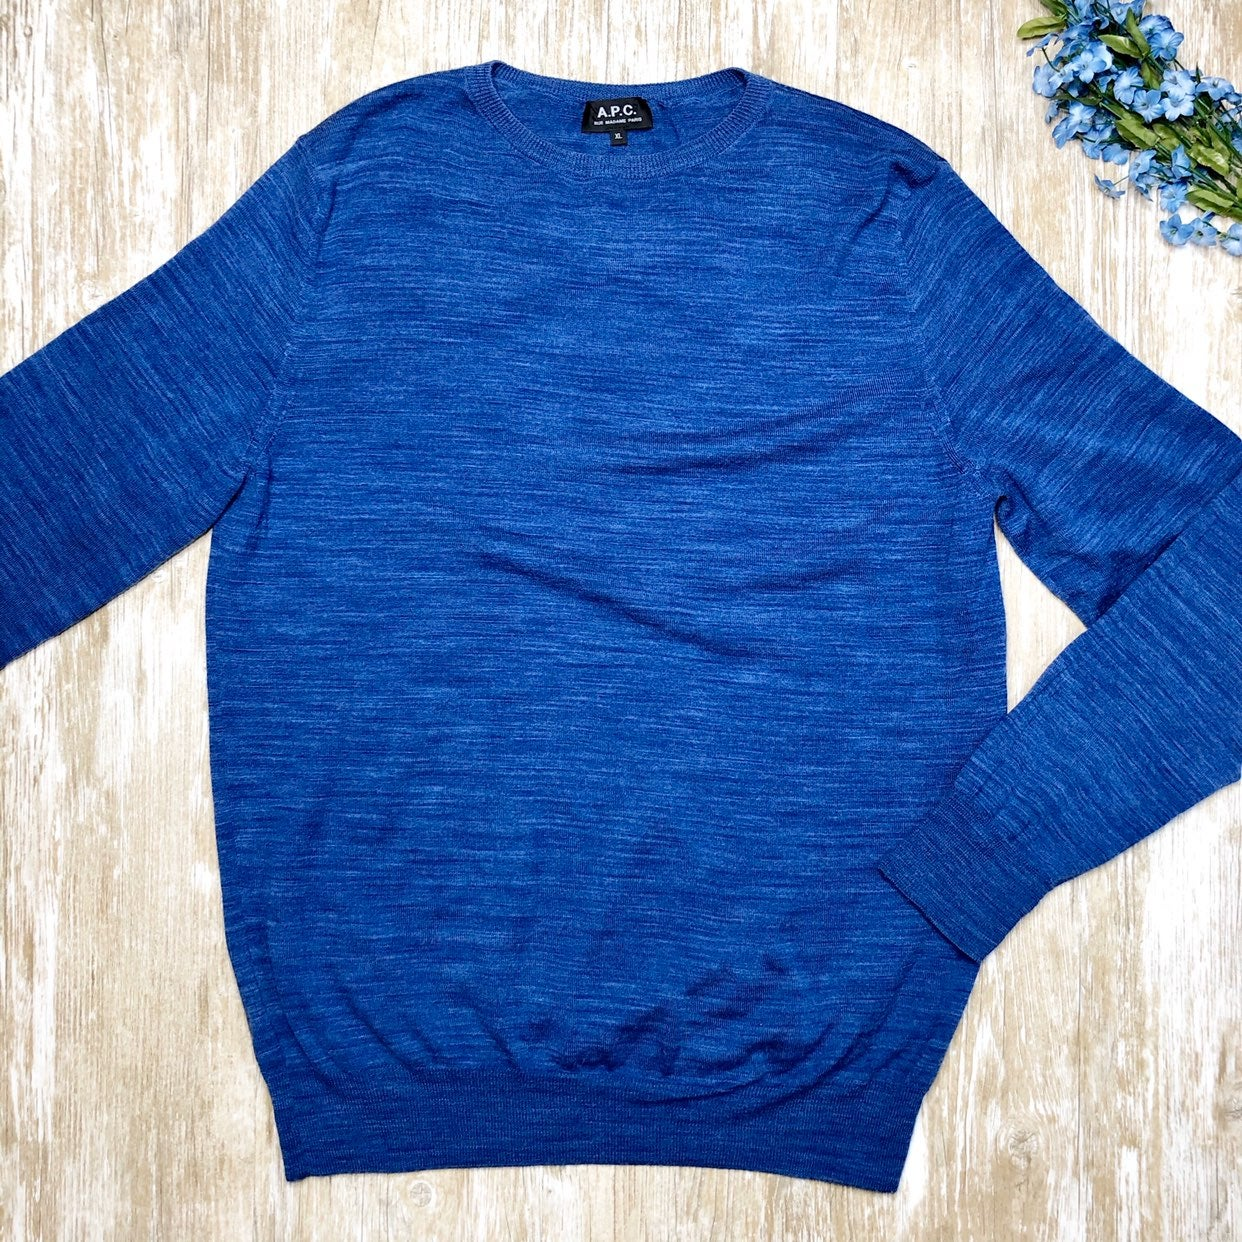 APC Mens Merino Wool Lightweight Sweater